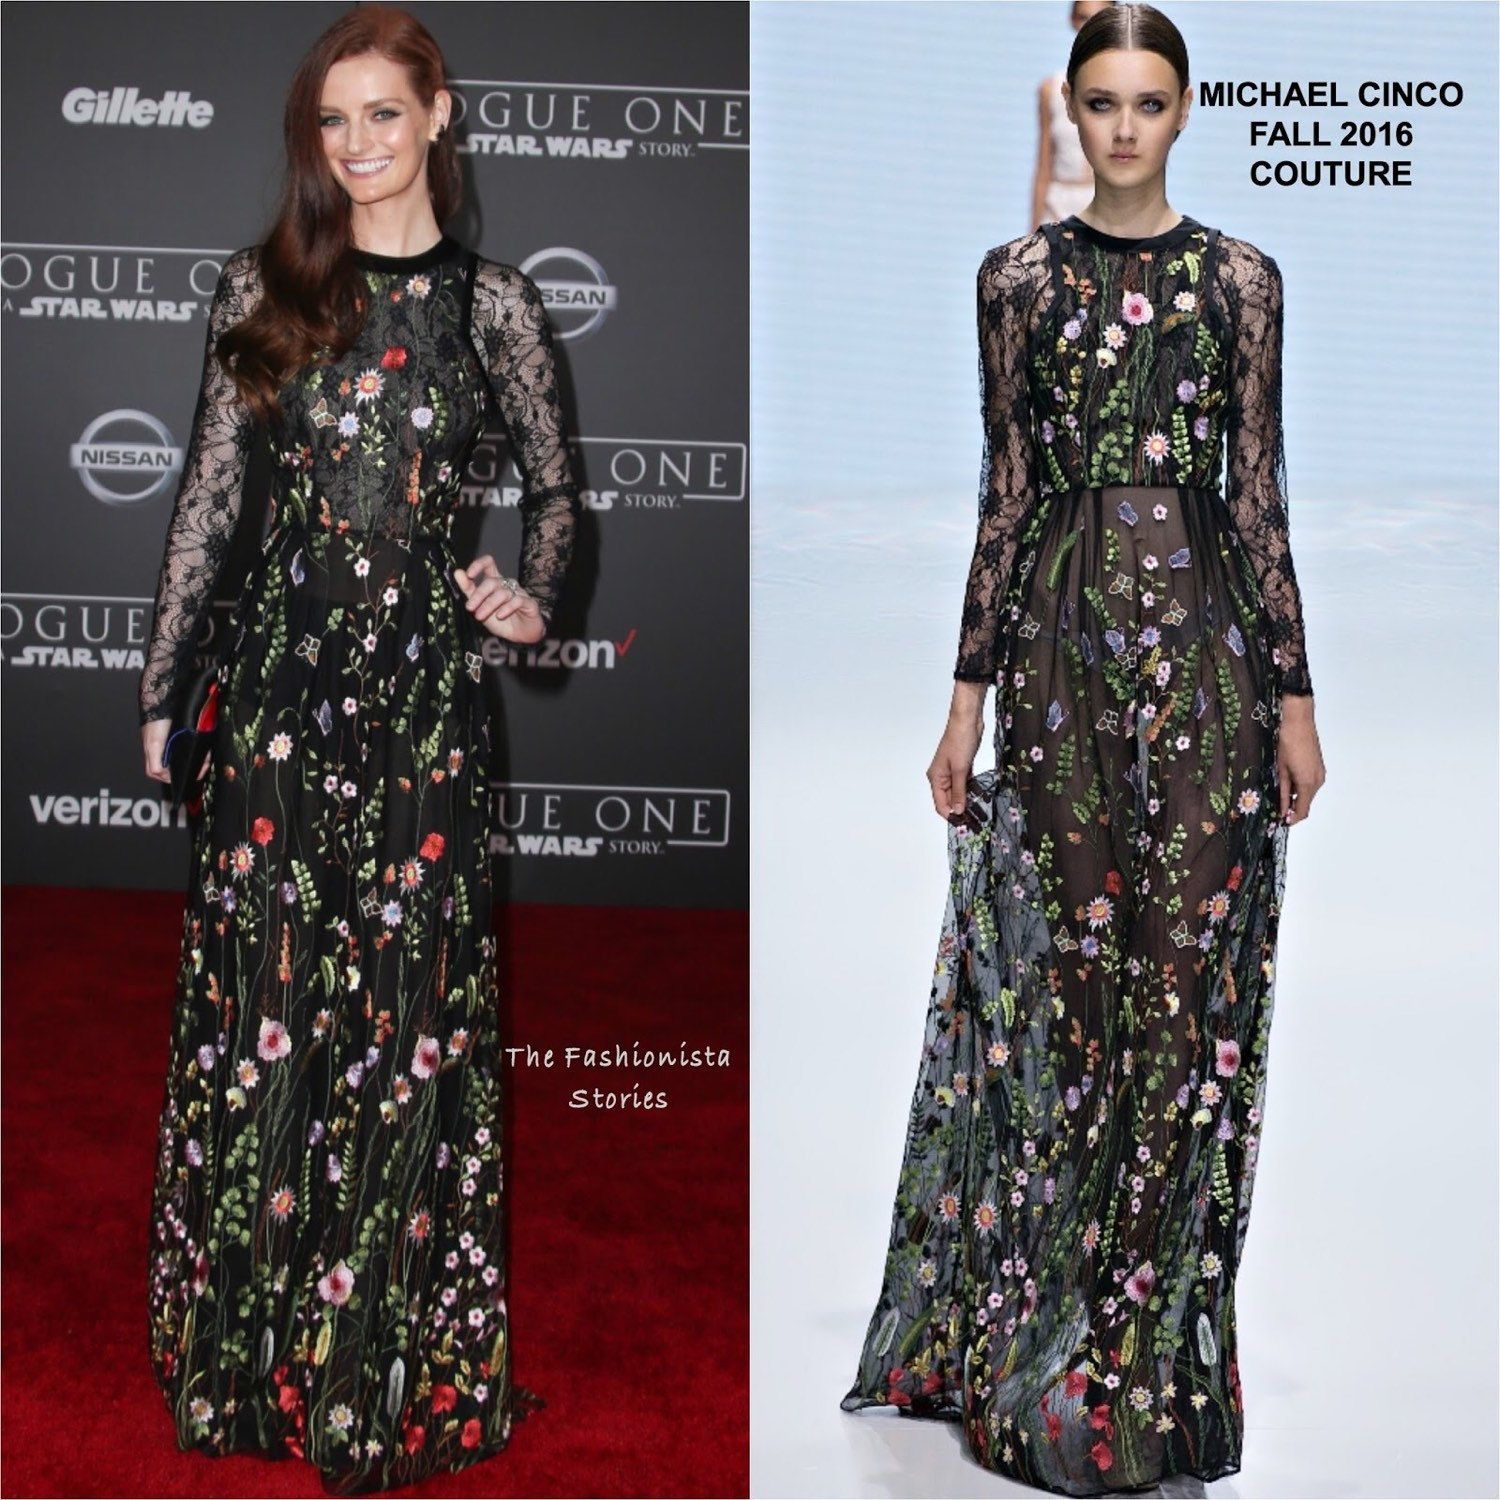 We are selling the same floral embroidered lace tulle fabric that Lydia Hearst was wearing during the red carpet event of Star Wars: Rouge One movie. Lydia was wearing a beautiful avant grade dress designed by Michael Cinco.